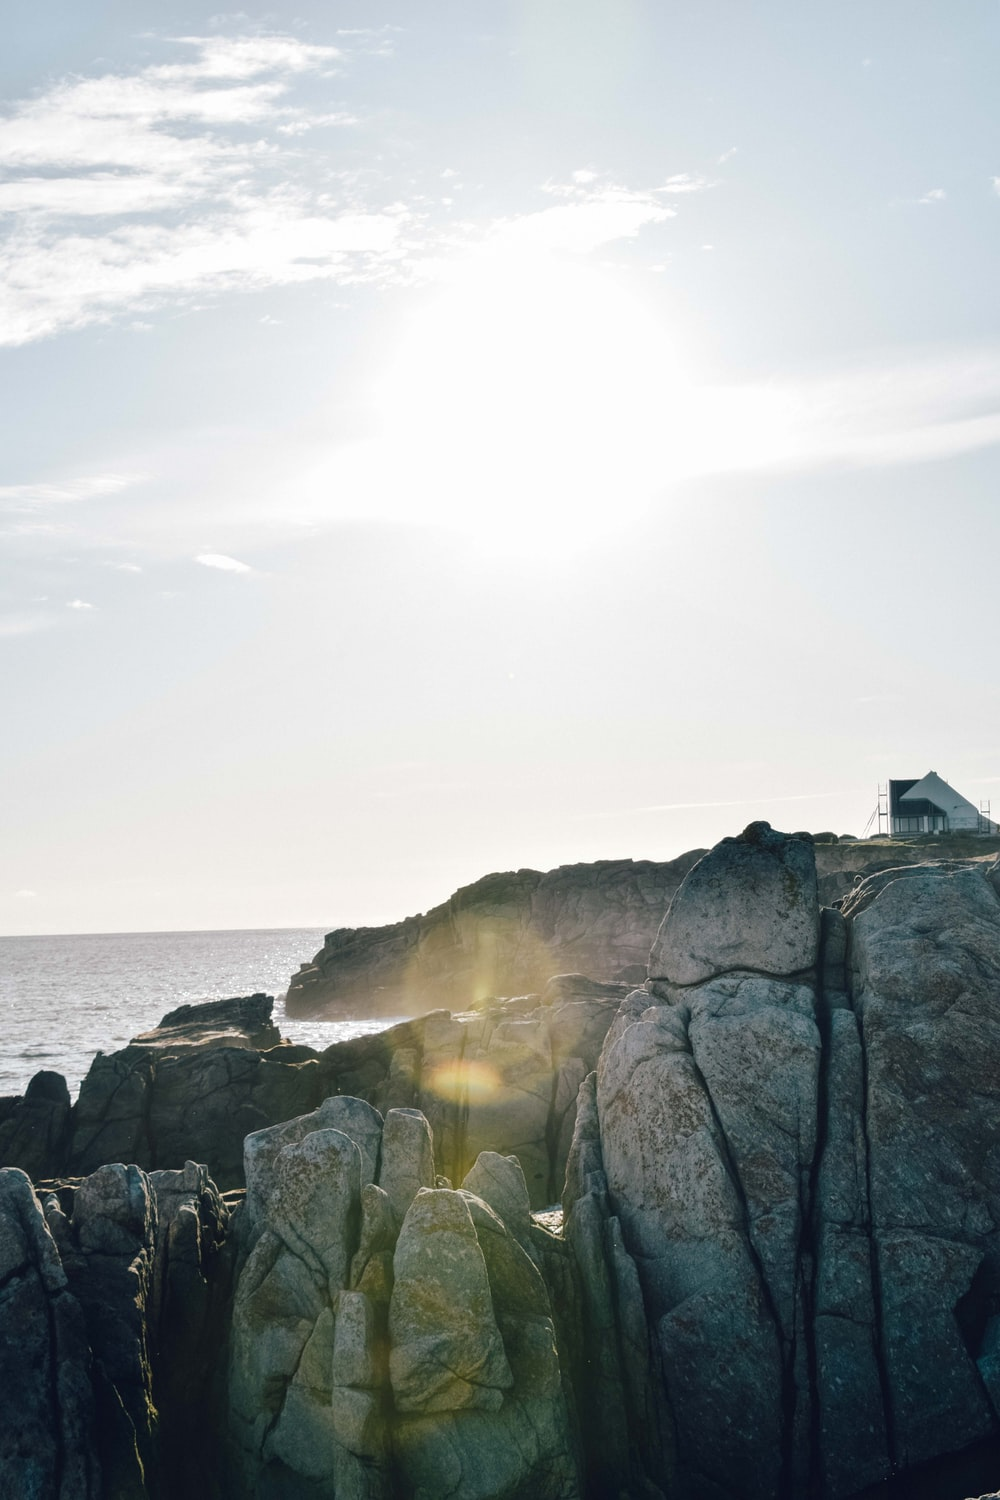 landscape photography of rock formation near beach